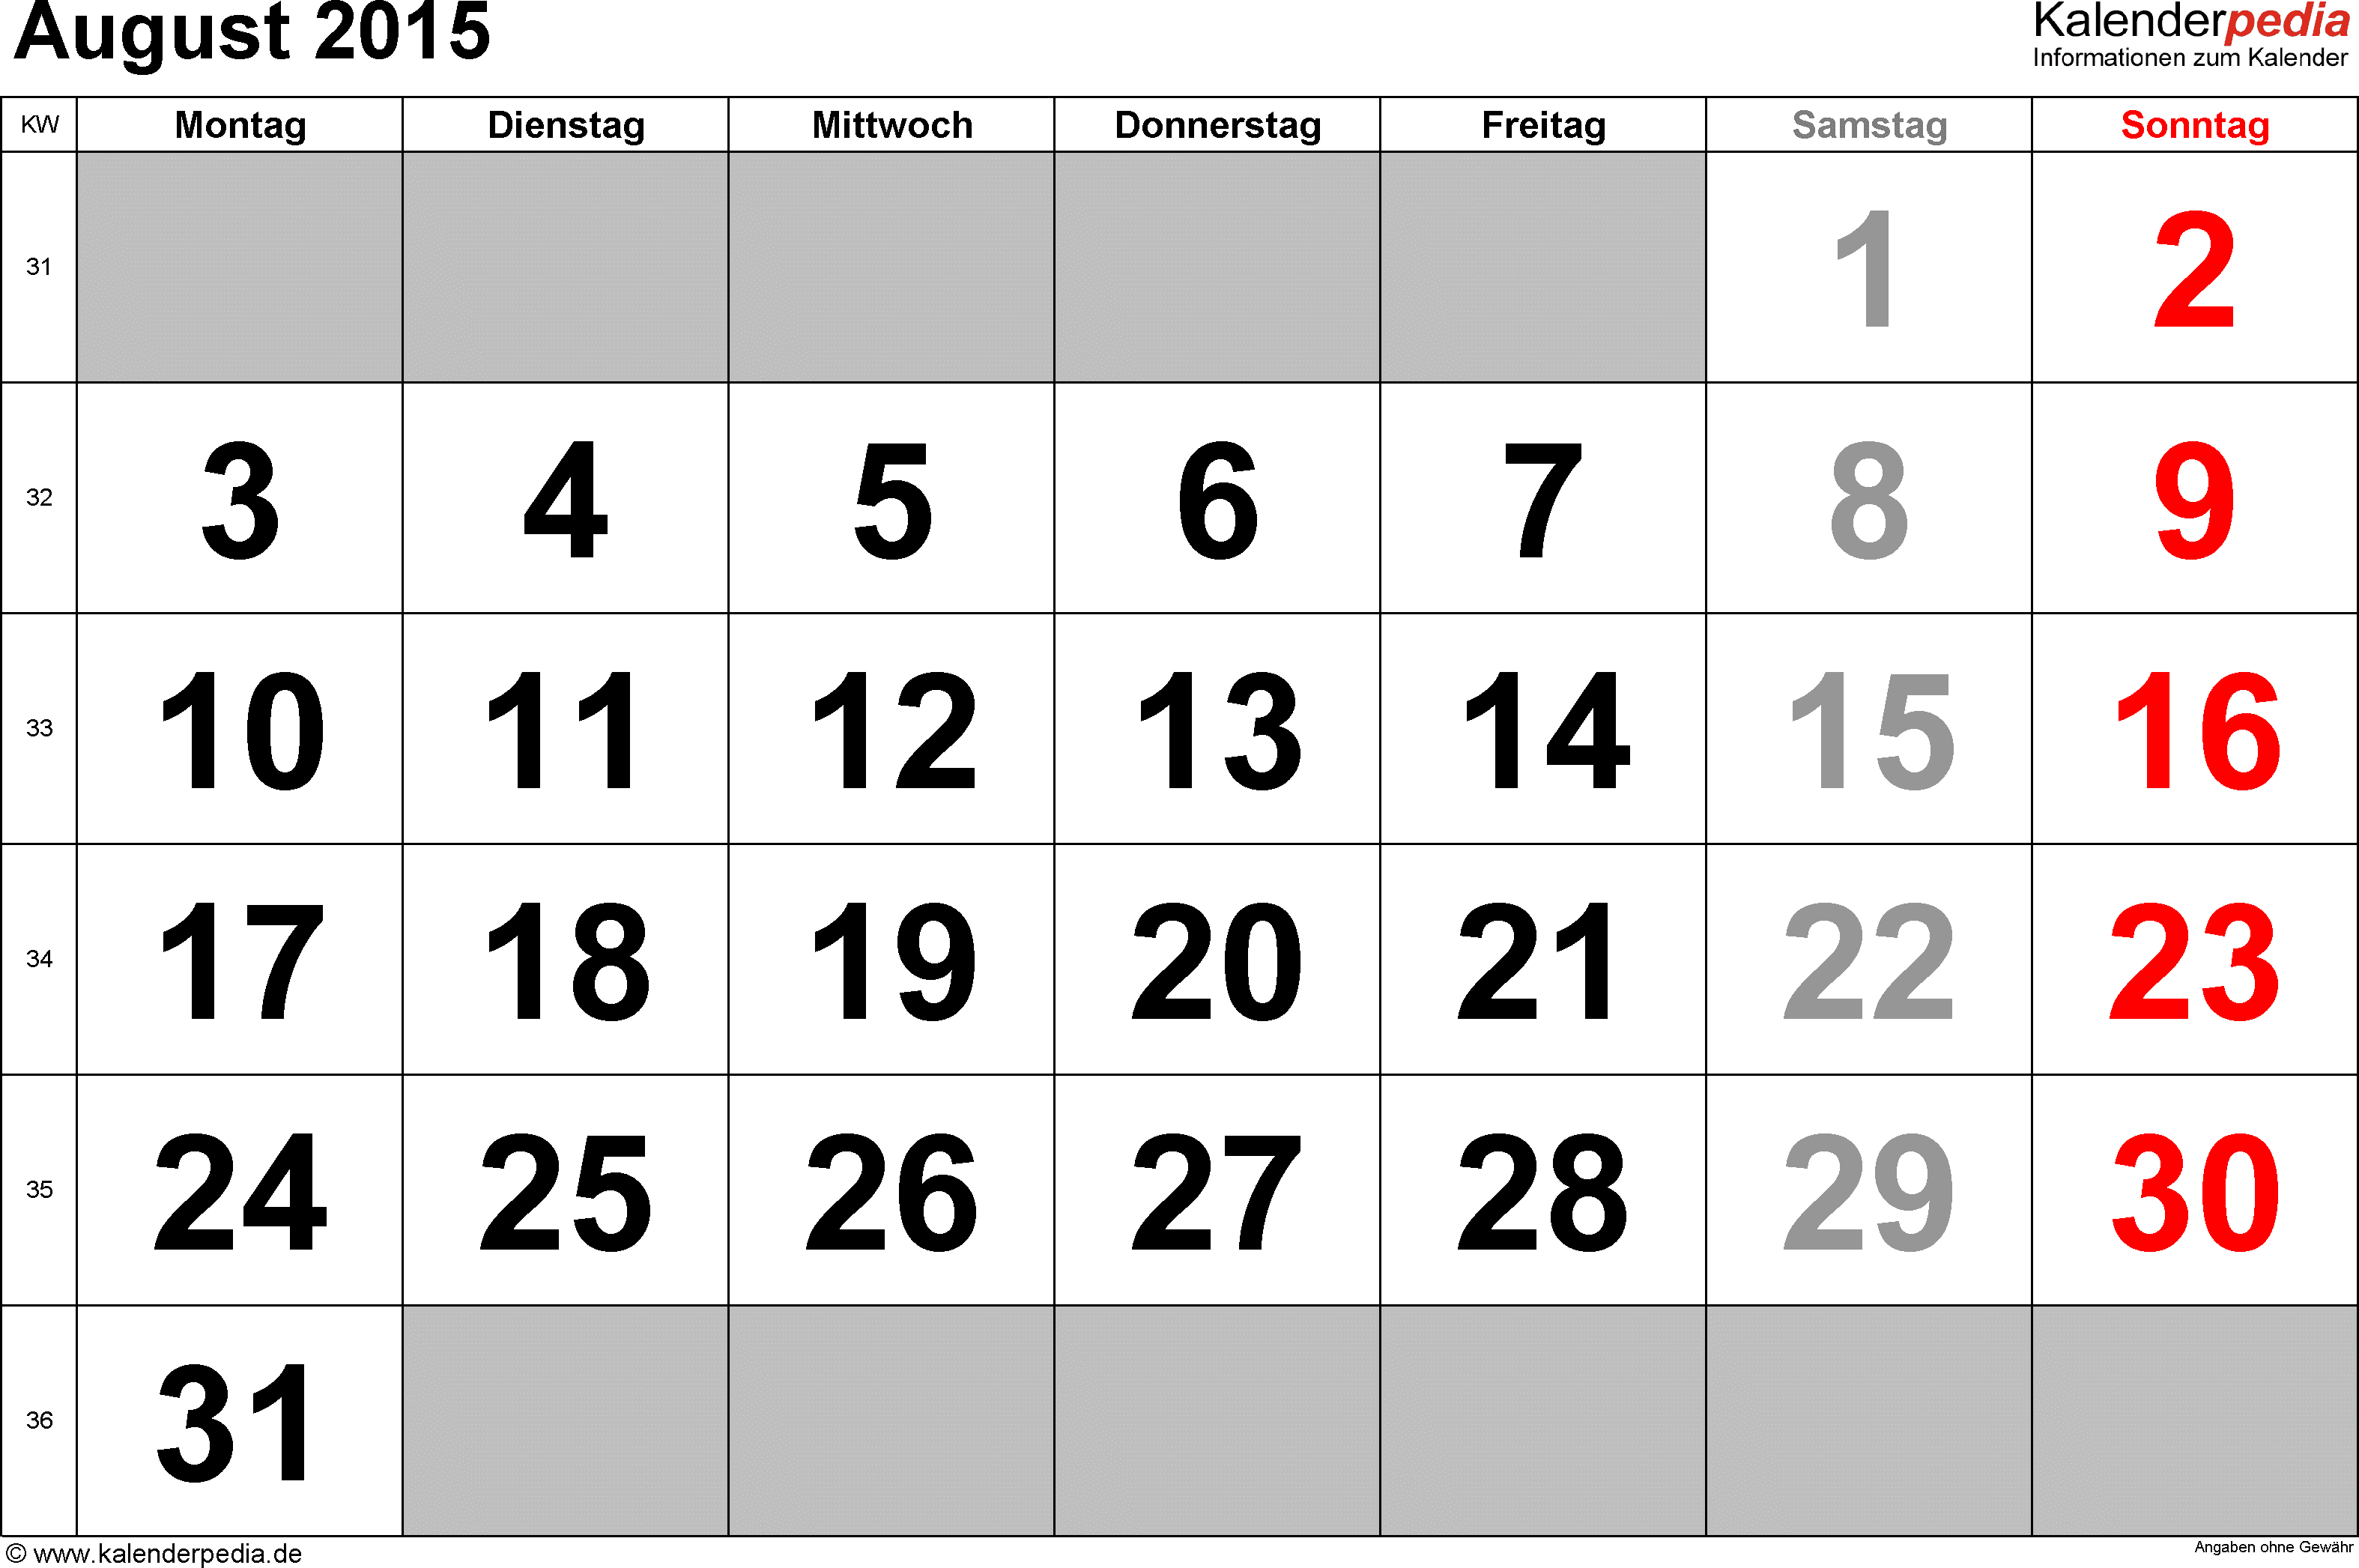 Kalender August 2015 im Querformat, grosse Ziffern